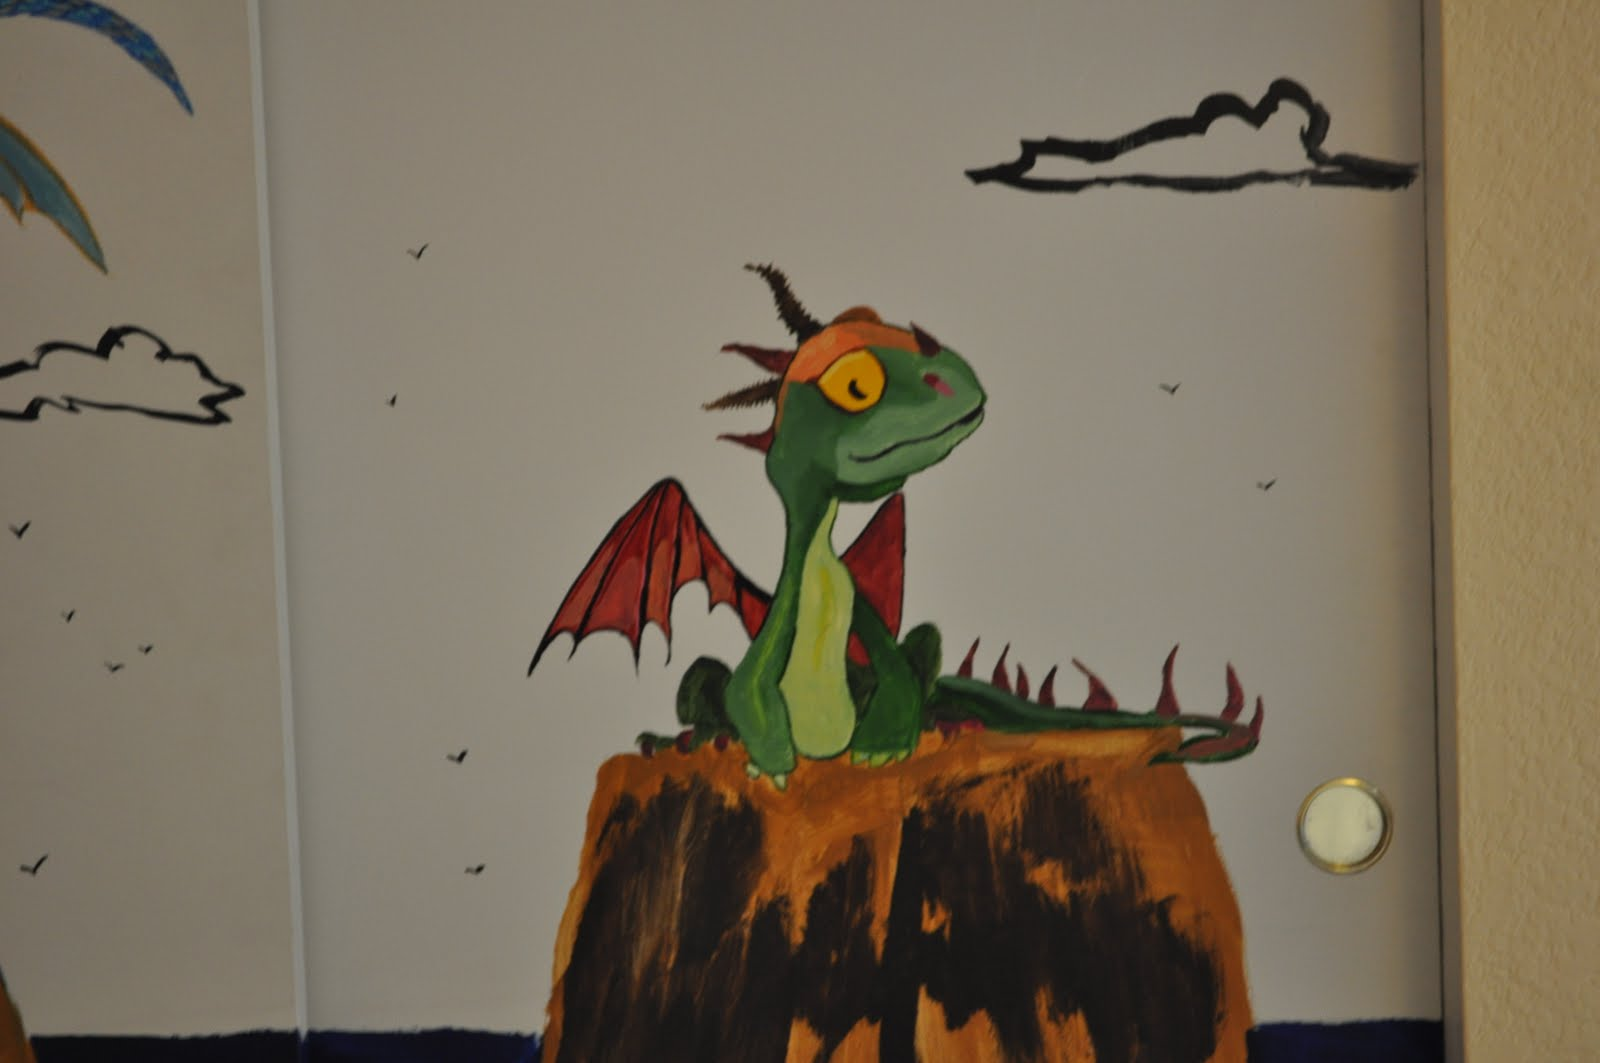 How to train your dragon mural cappatoons for Dragon mural wallpaper